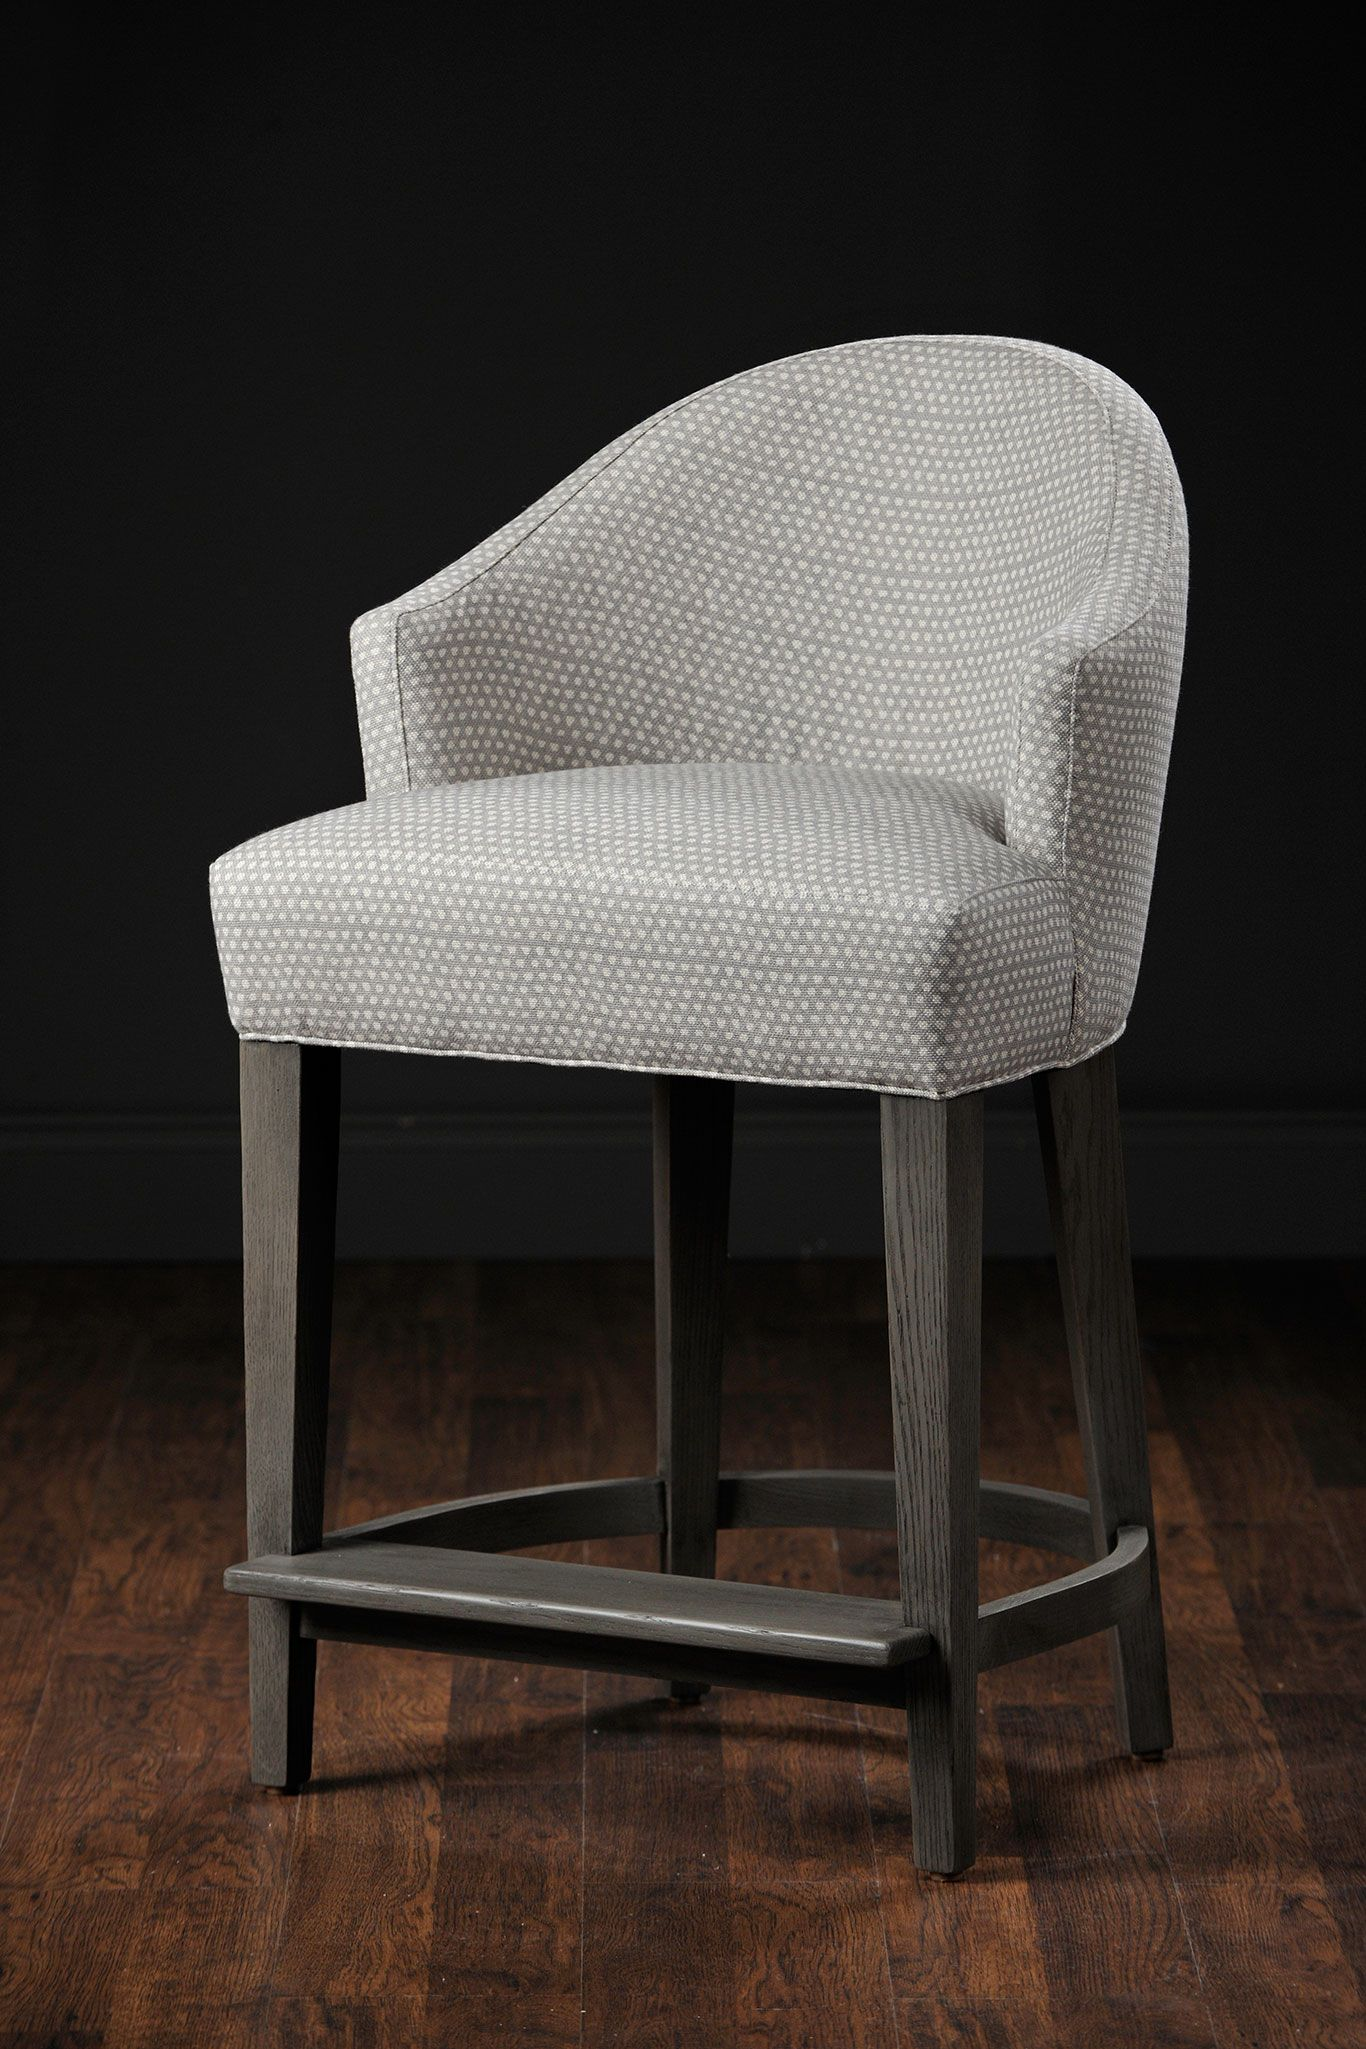 Wendy upholstered counter stool in cotton and linen grey and cream dotted fabric with smoke finish